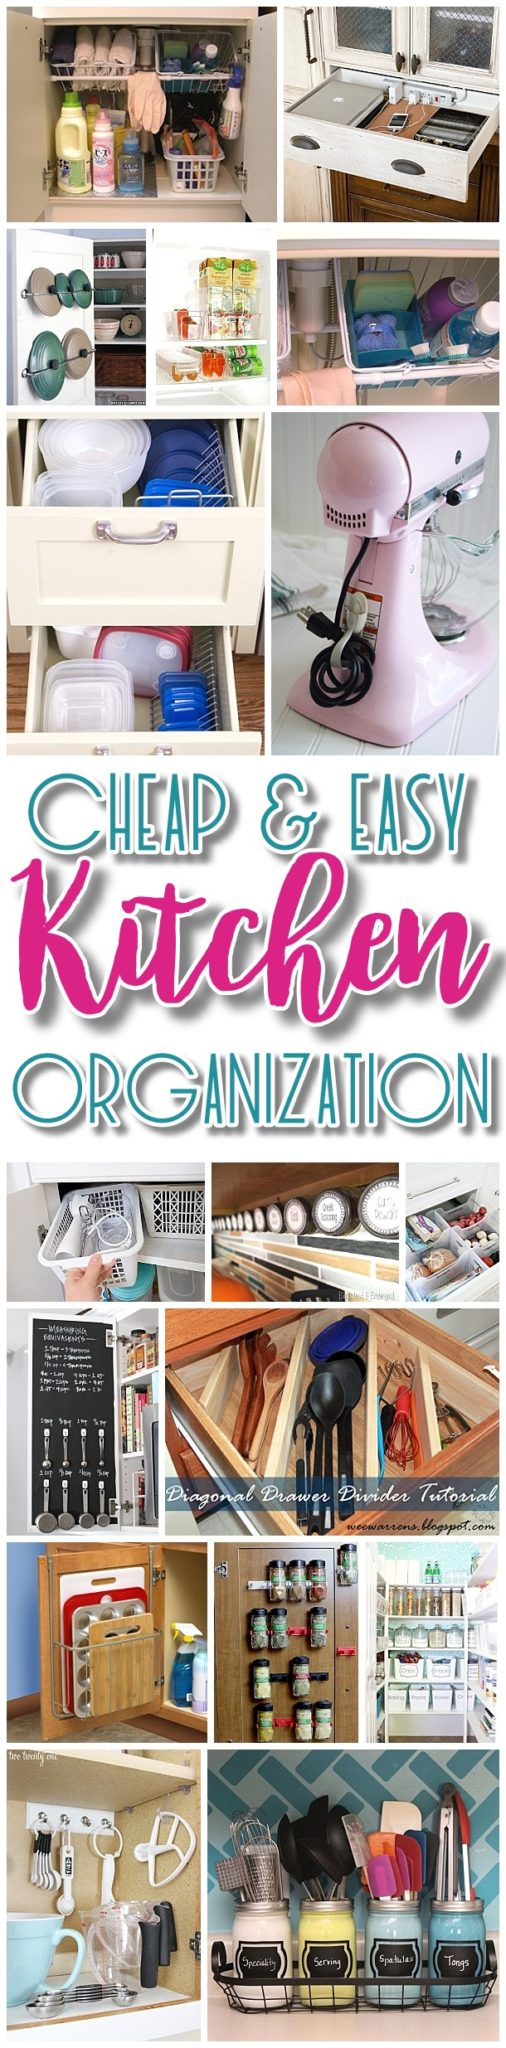 Easy And Budget Friendly Ways To Organize Your Kitchen Hacks Ideas E Saving